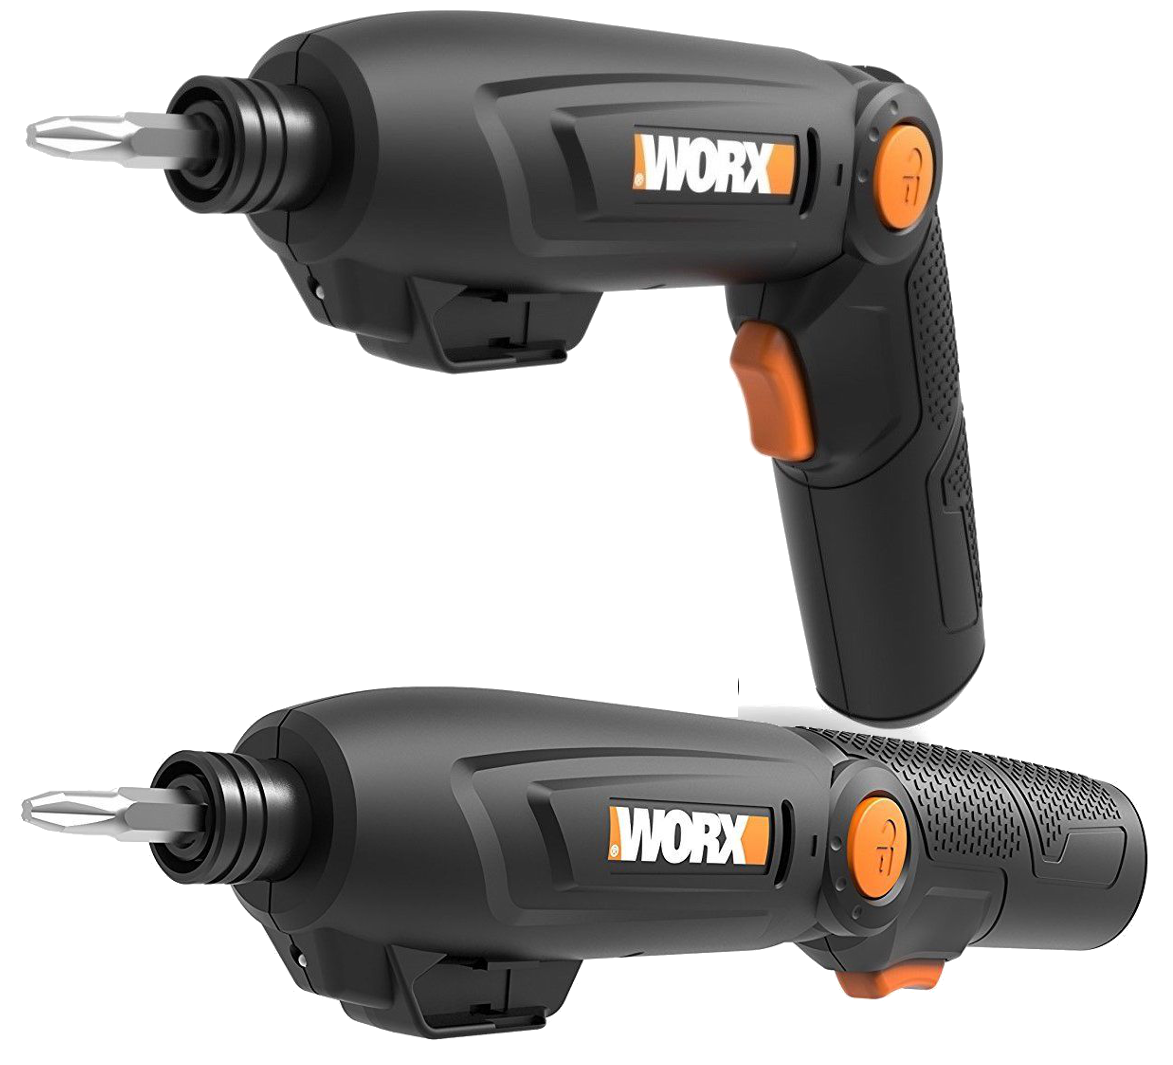 Worx Wx270l (2) For (1) 8v Cordless Impact Forcedriver